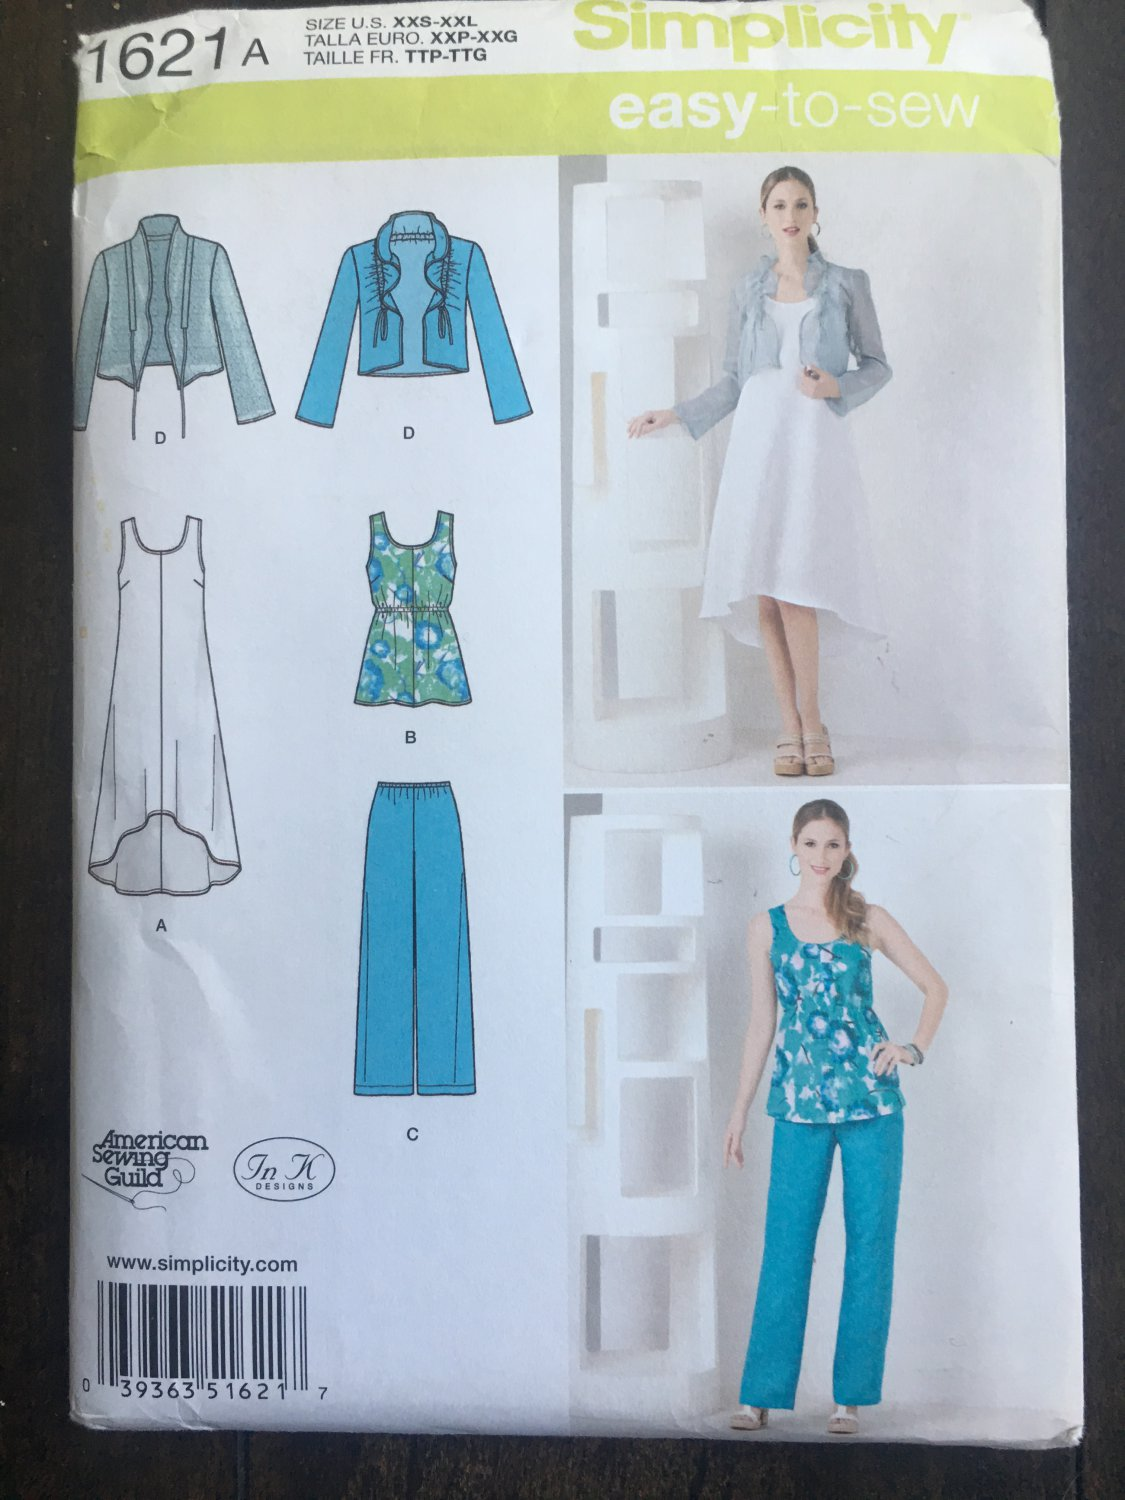 """Simplicity 1621 Sewing Pattern for Misses"""" Dress or Tunic, Pants &  Jacket SZ xxs-xxl"""